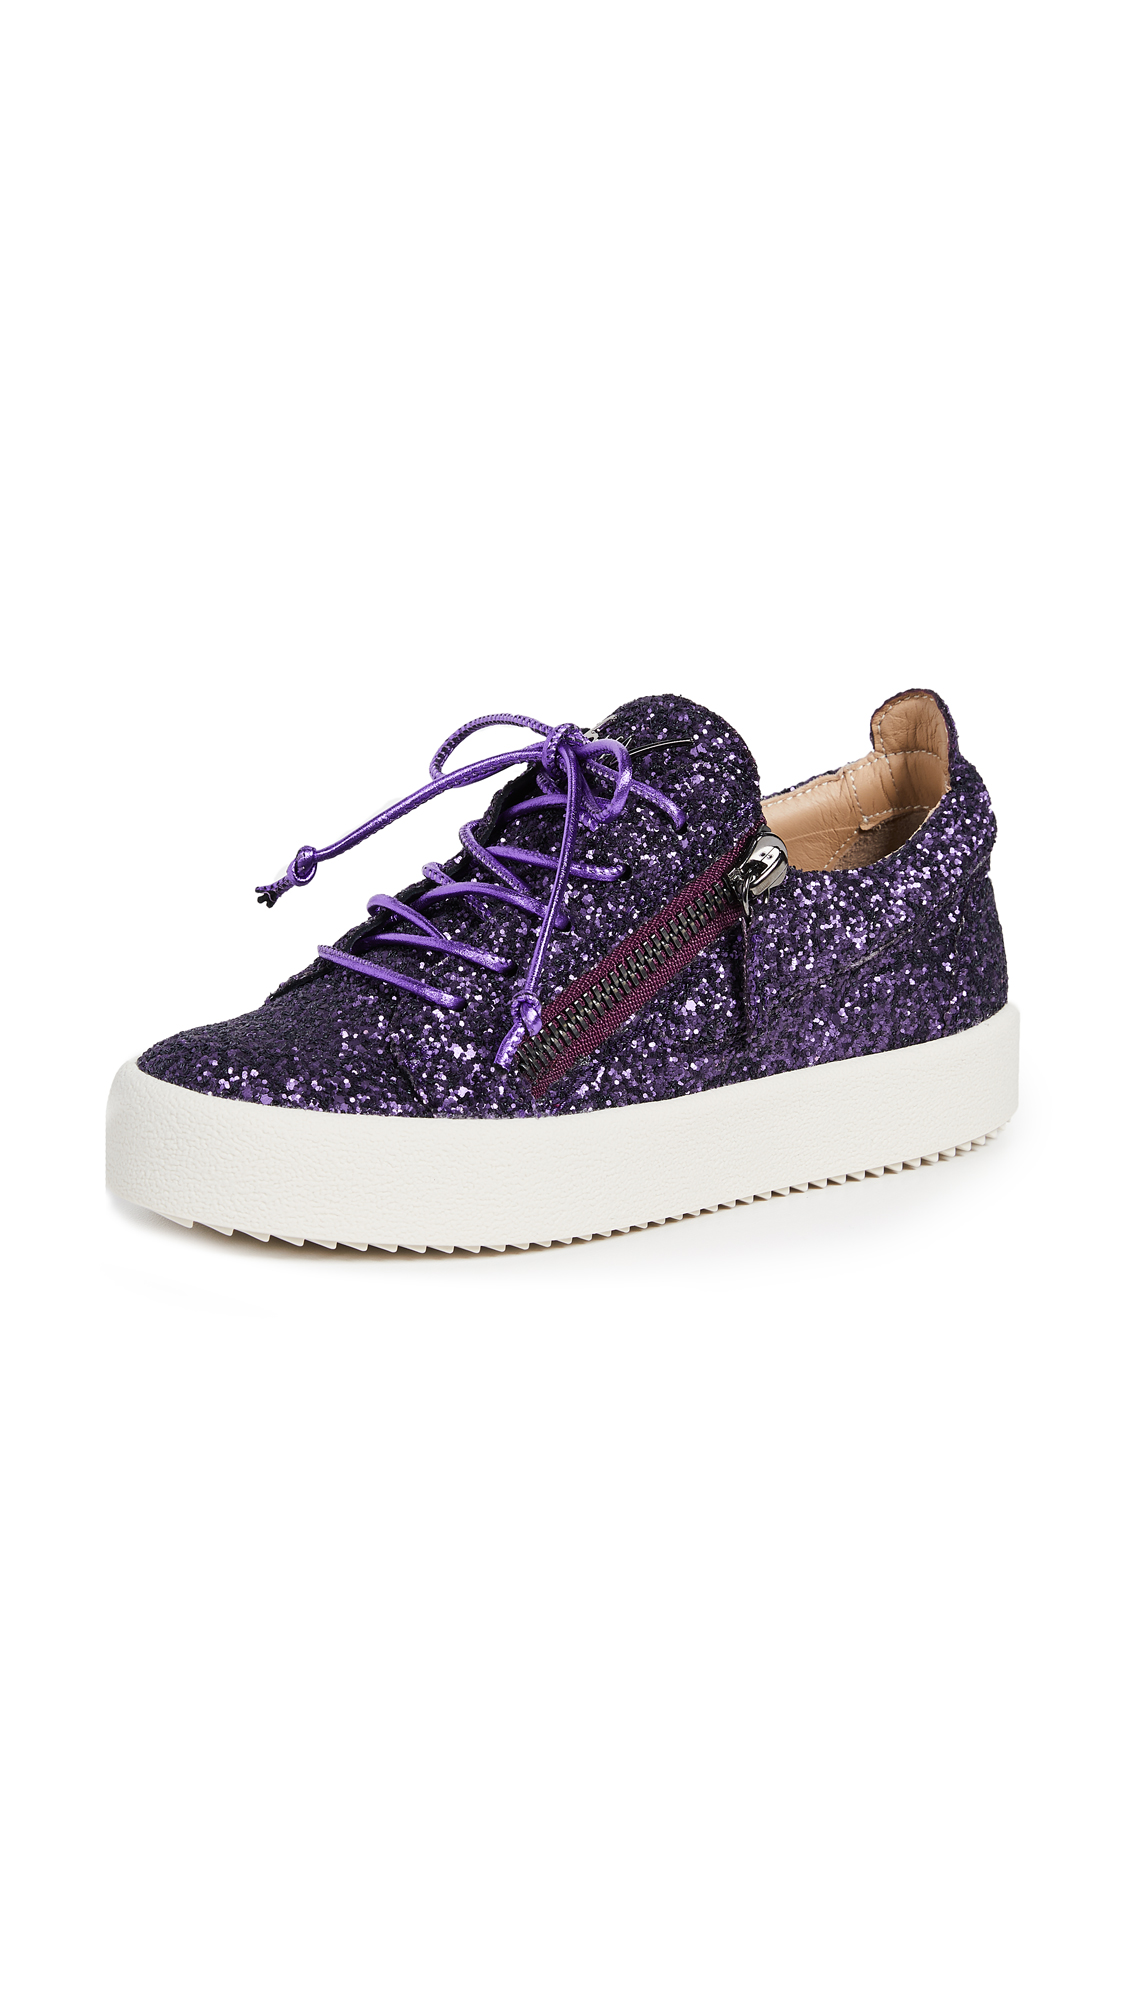 Giuseppe Zanotti Side Zip Glitter Sneakers - Purple